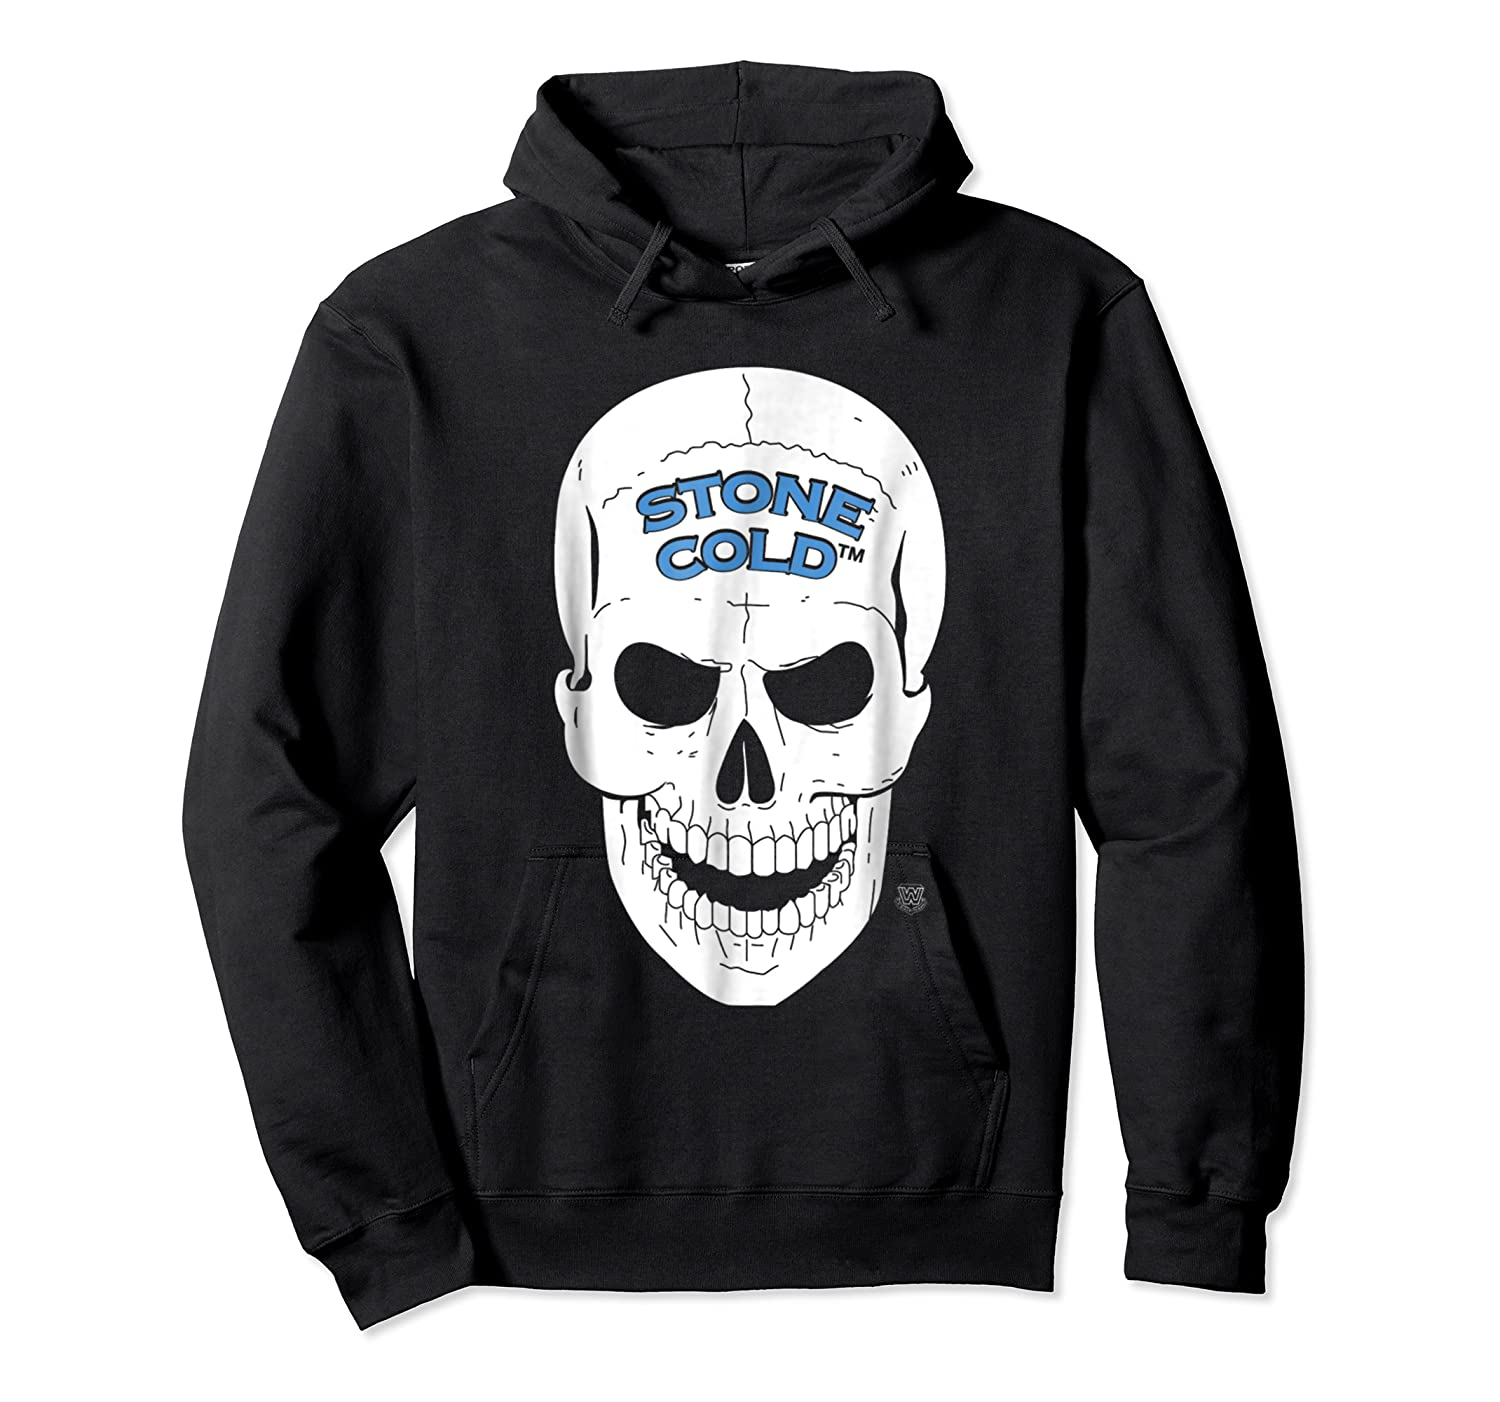 Stone Cold Steve Austin Shirts Unisex Pullover Hoodie